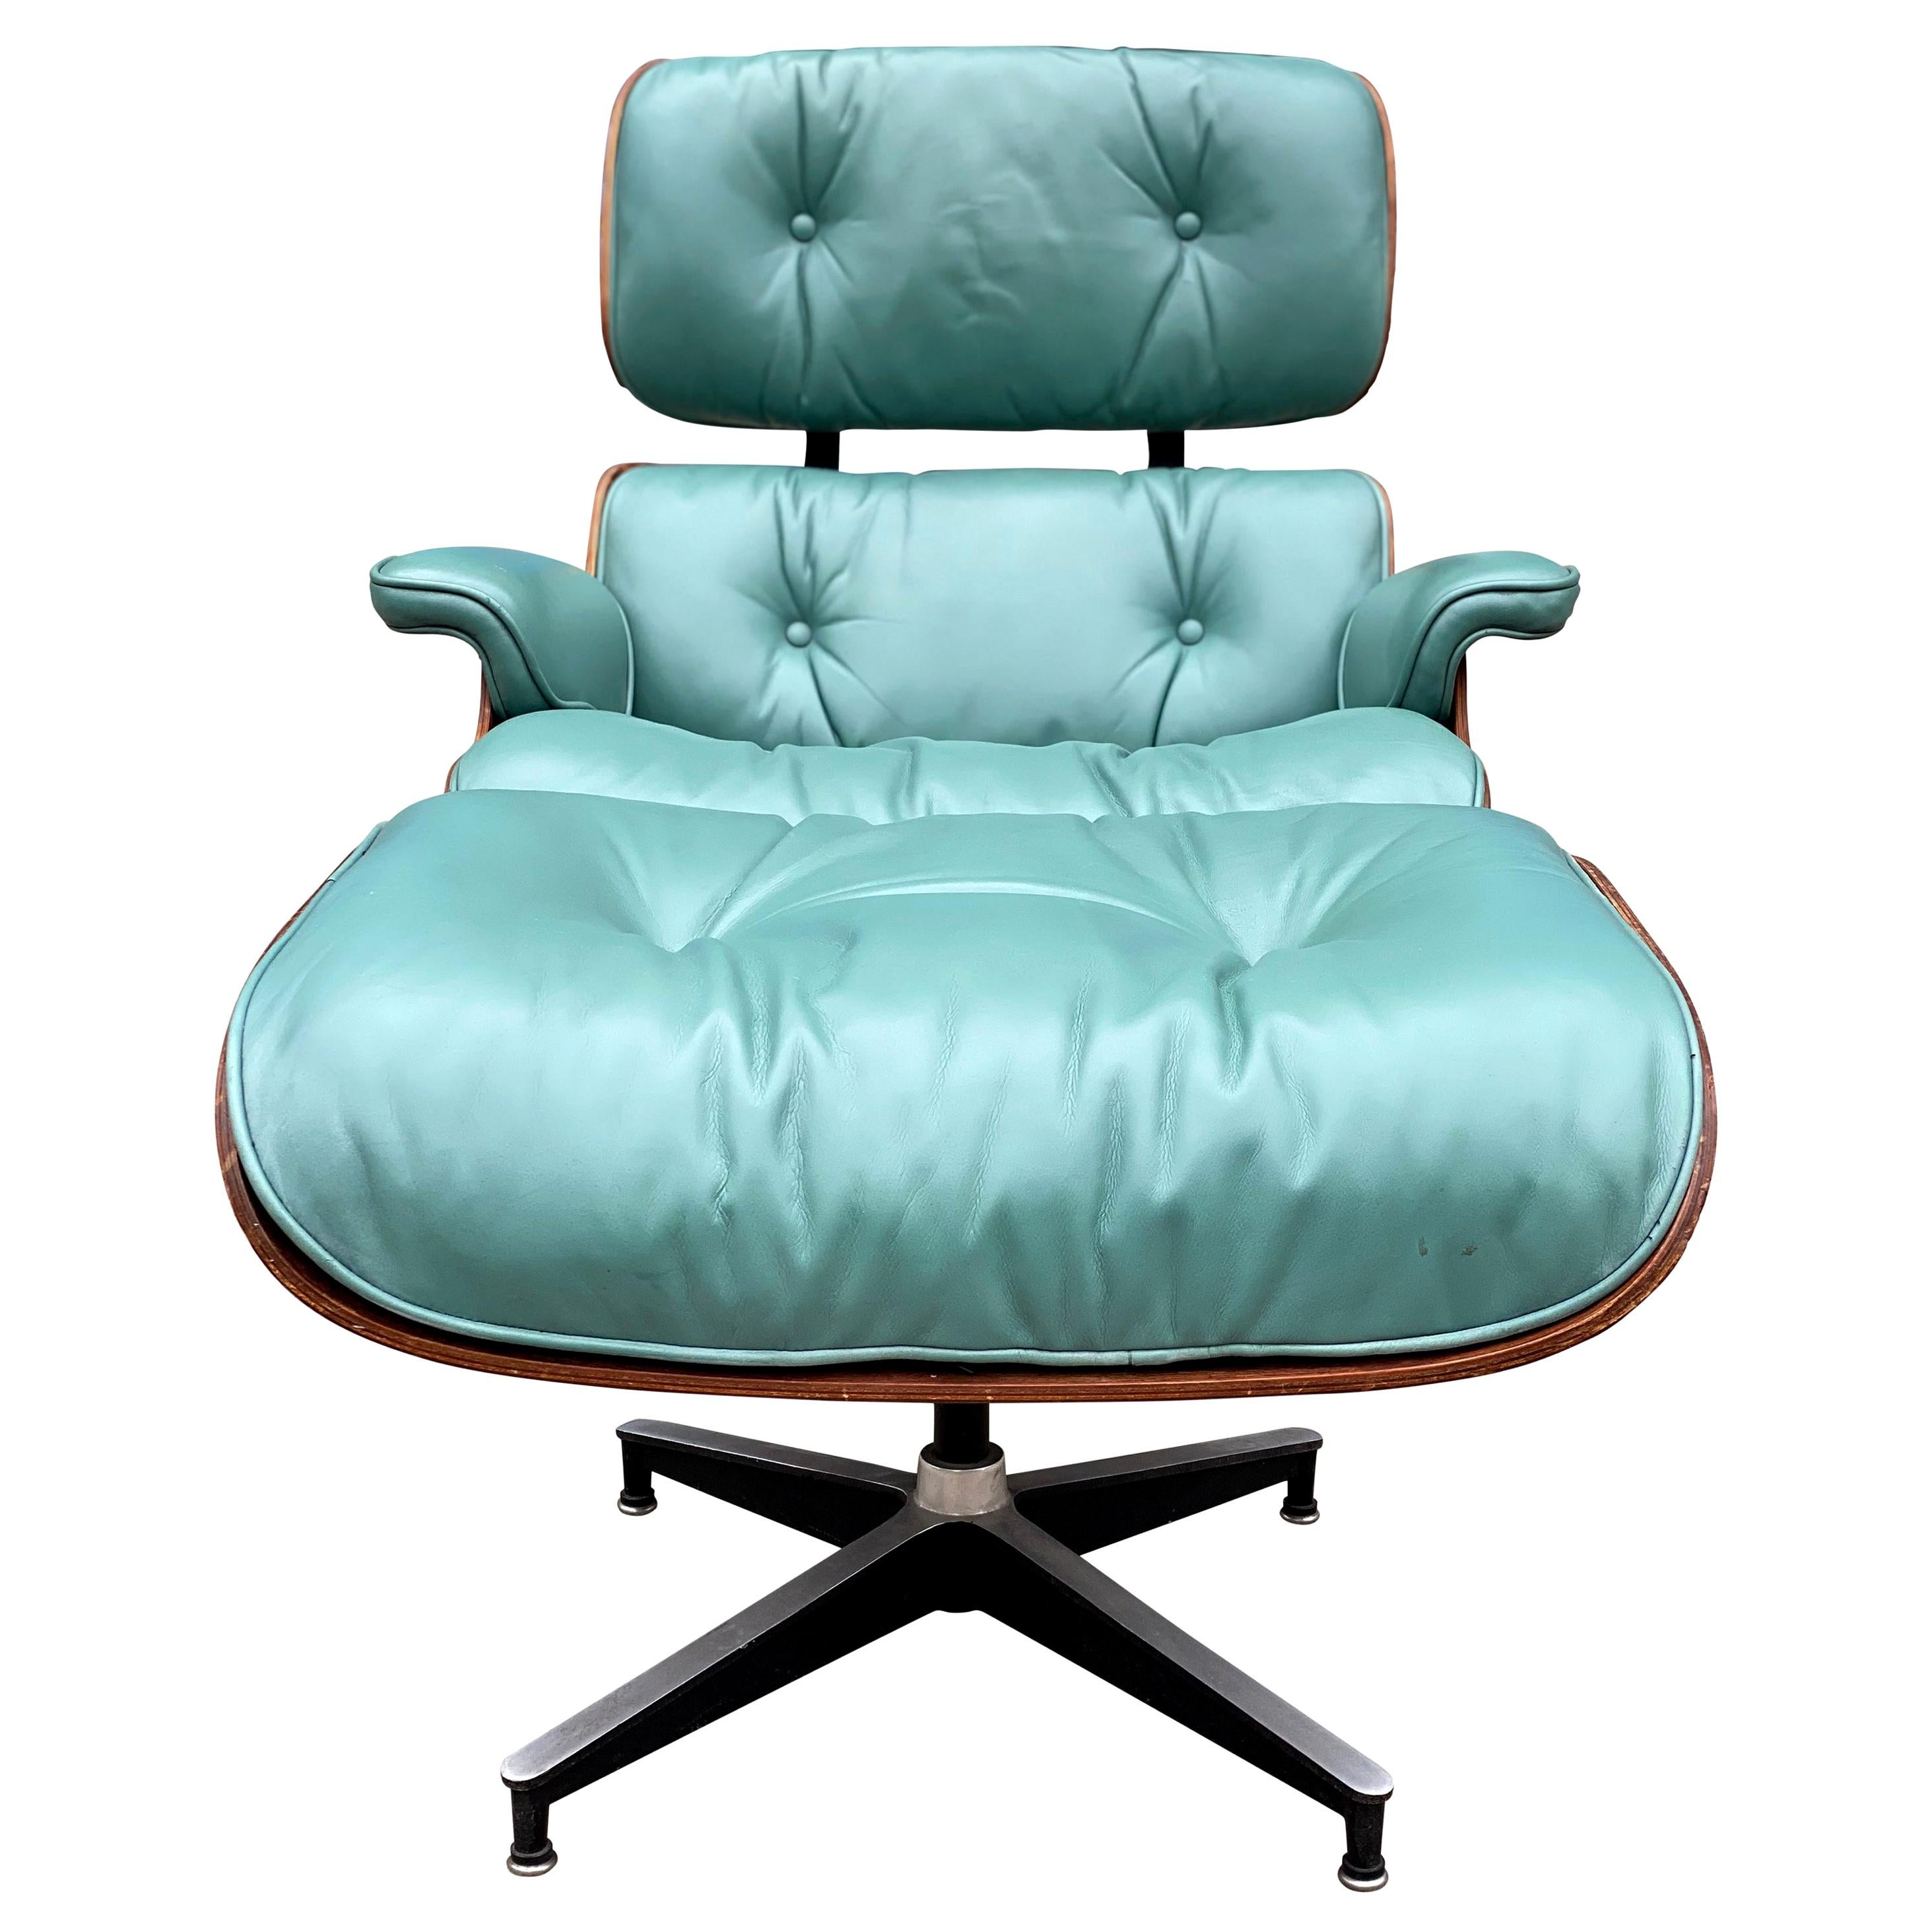 Rare Custom Herman Miller Eames Lounge Chair and Ottoman